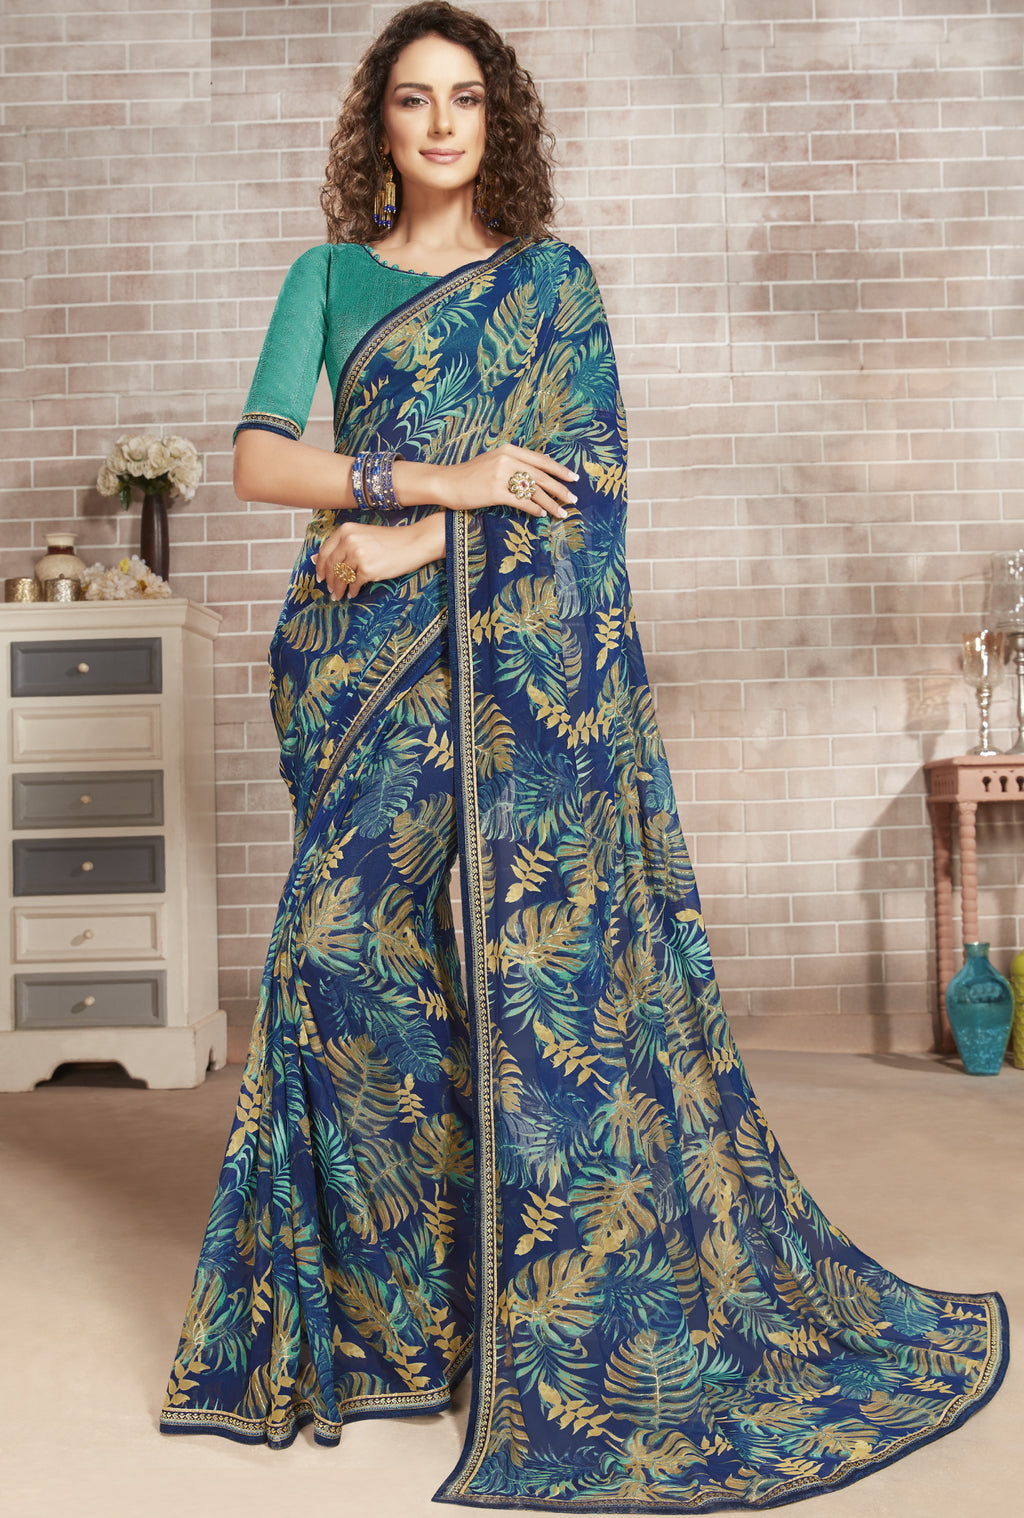 Blue Color Georgette Lovely Office Wear Sarees NYF-6224